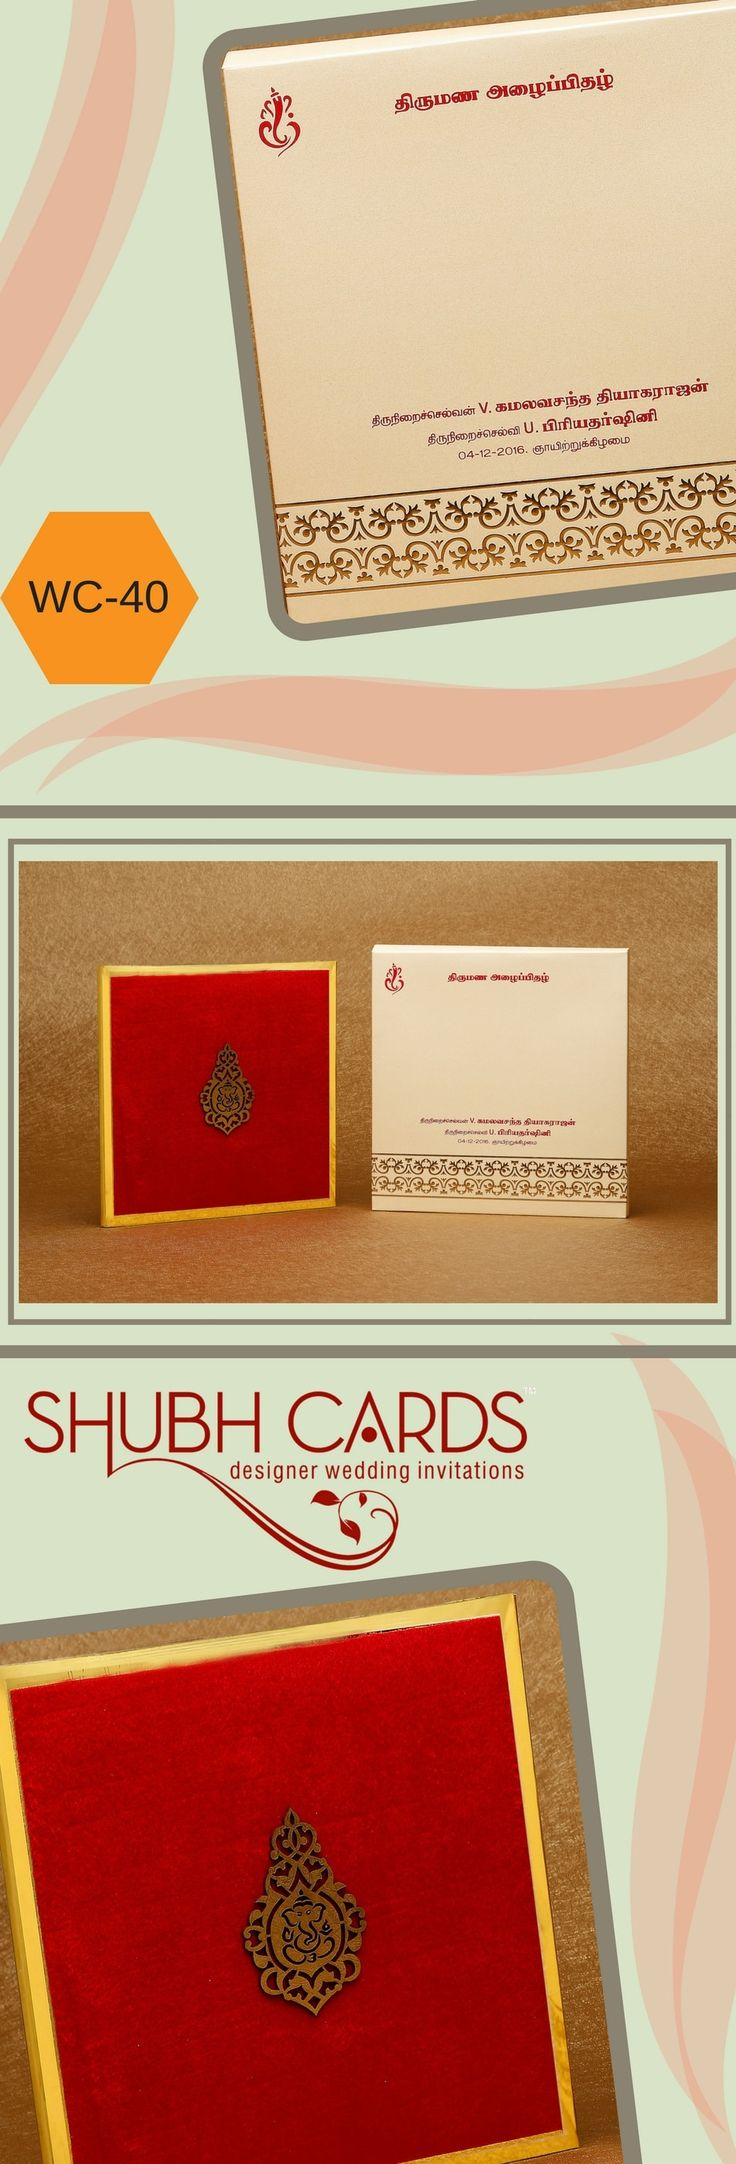 The 27 best Grand Wedding Invitations images on Pinterest   Blue box ...